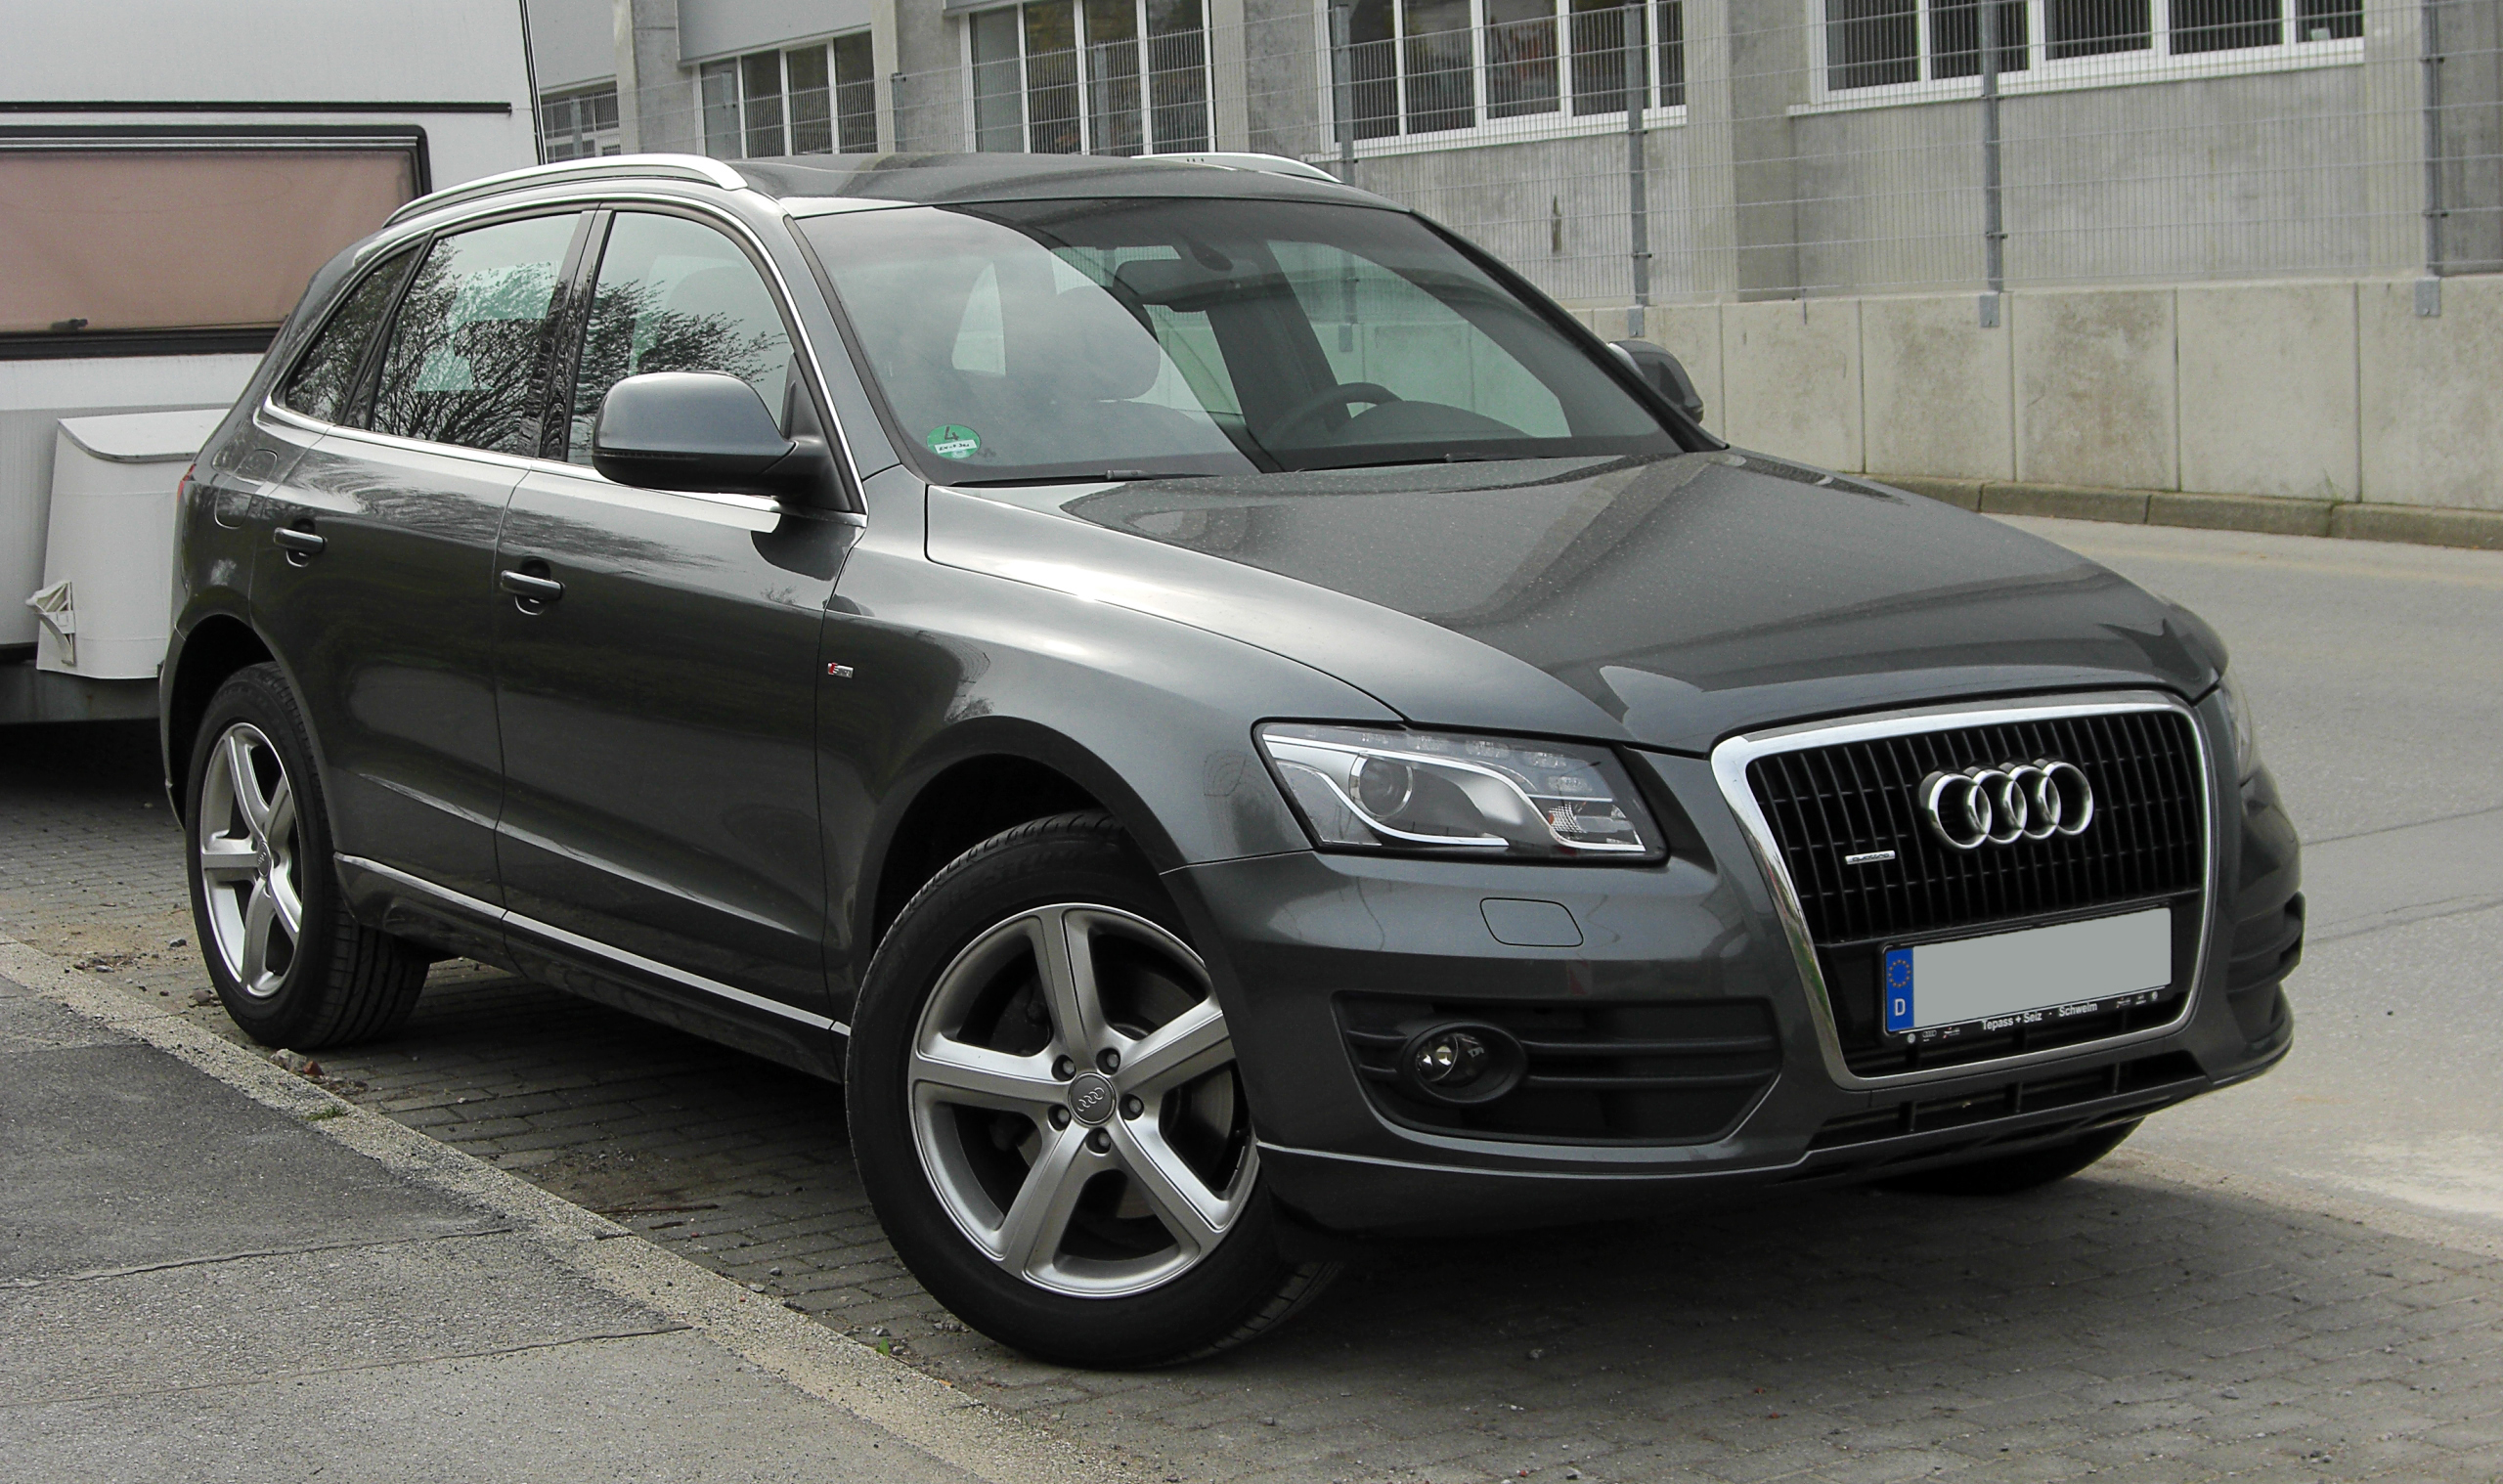 fichier audi q5 quattro s line frontansicht 3 april 2011 w wikip dia. Black Bedroom Furniture Sets. Home Design Ideas